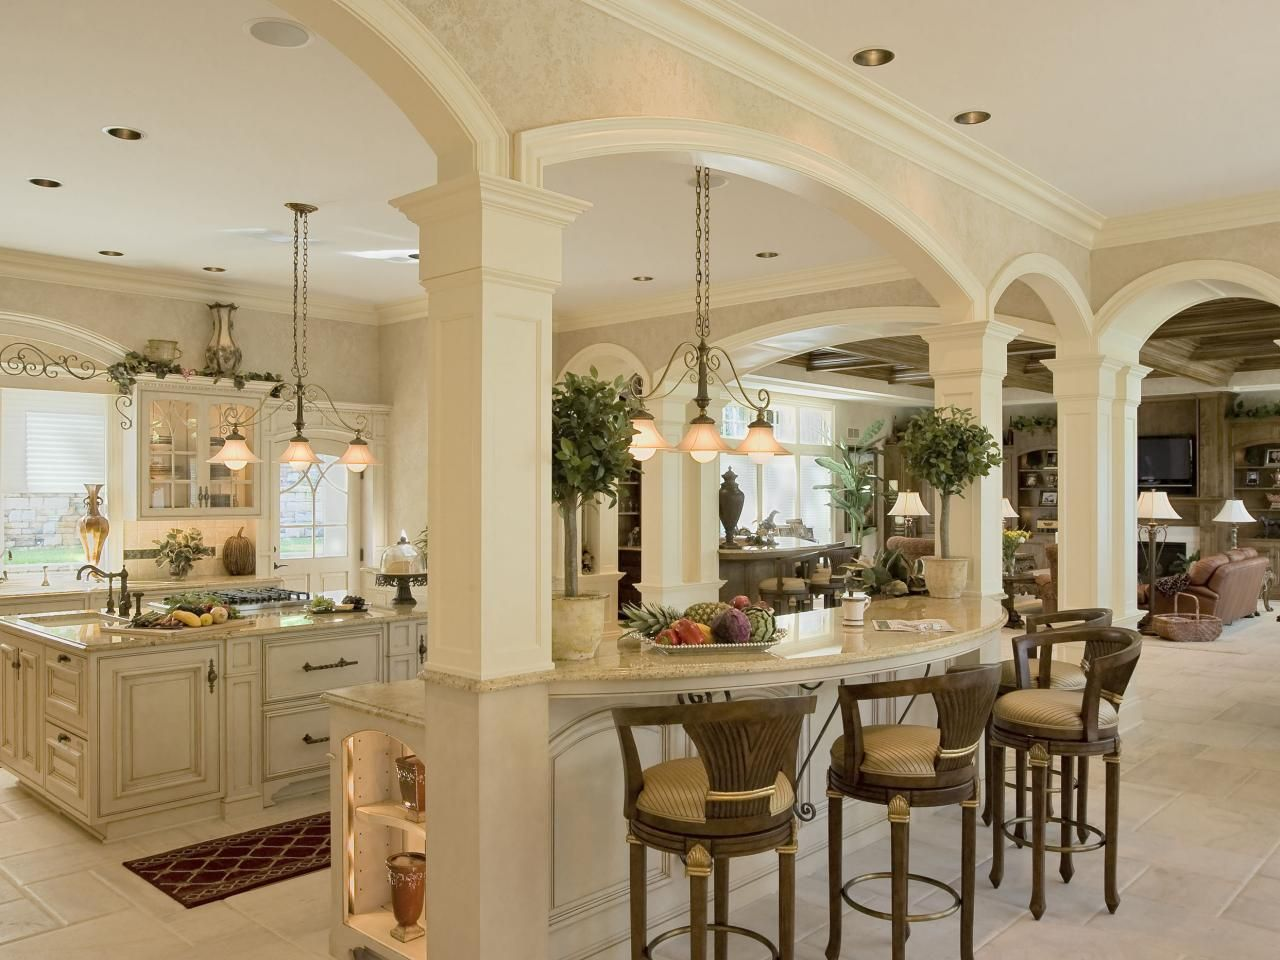 nicest kitchens - Google Search | nicehouses | Pinterest ...